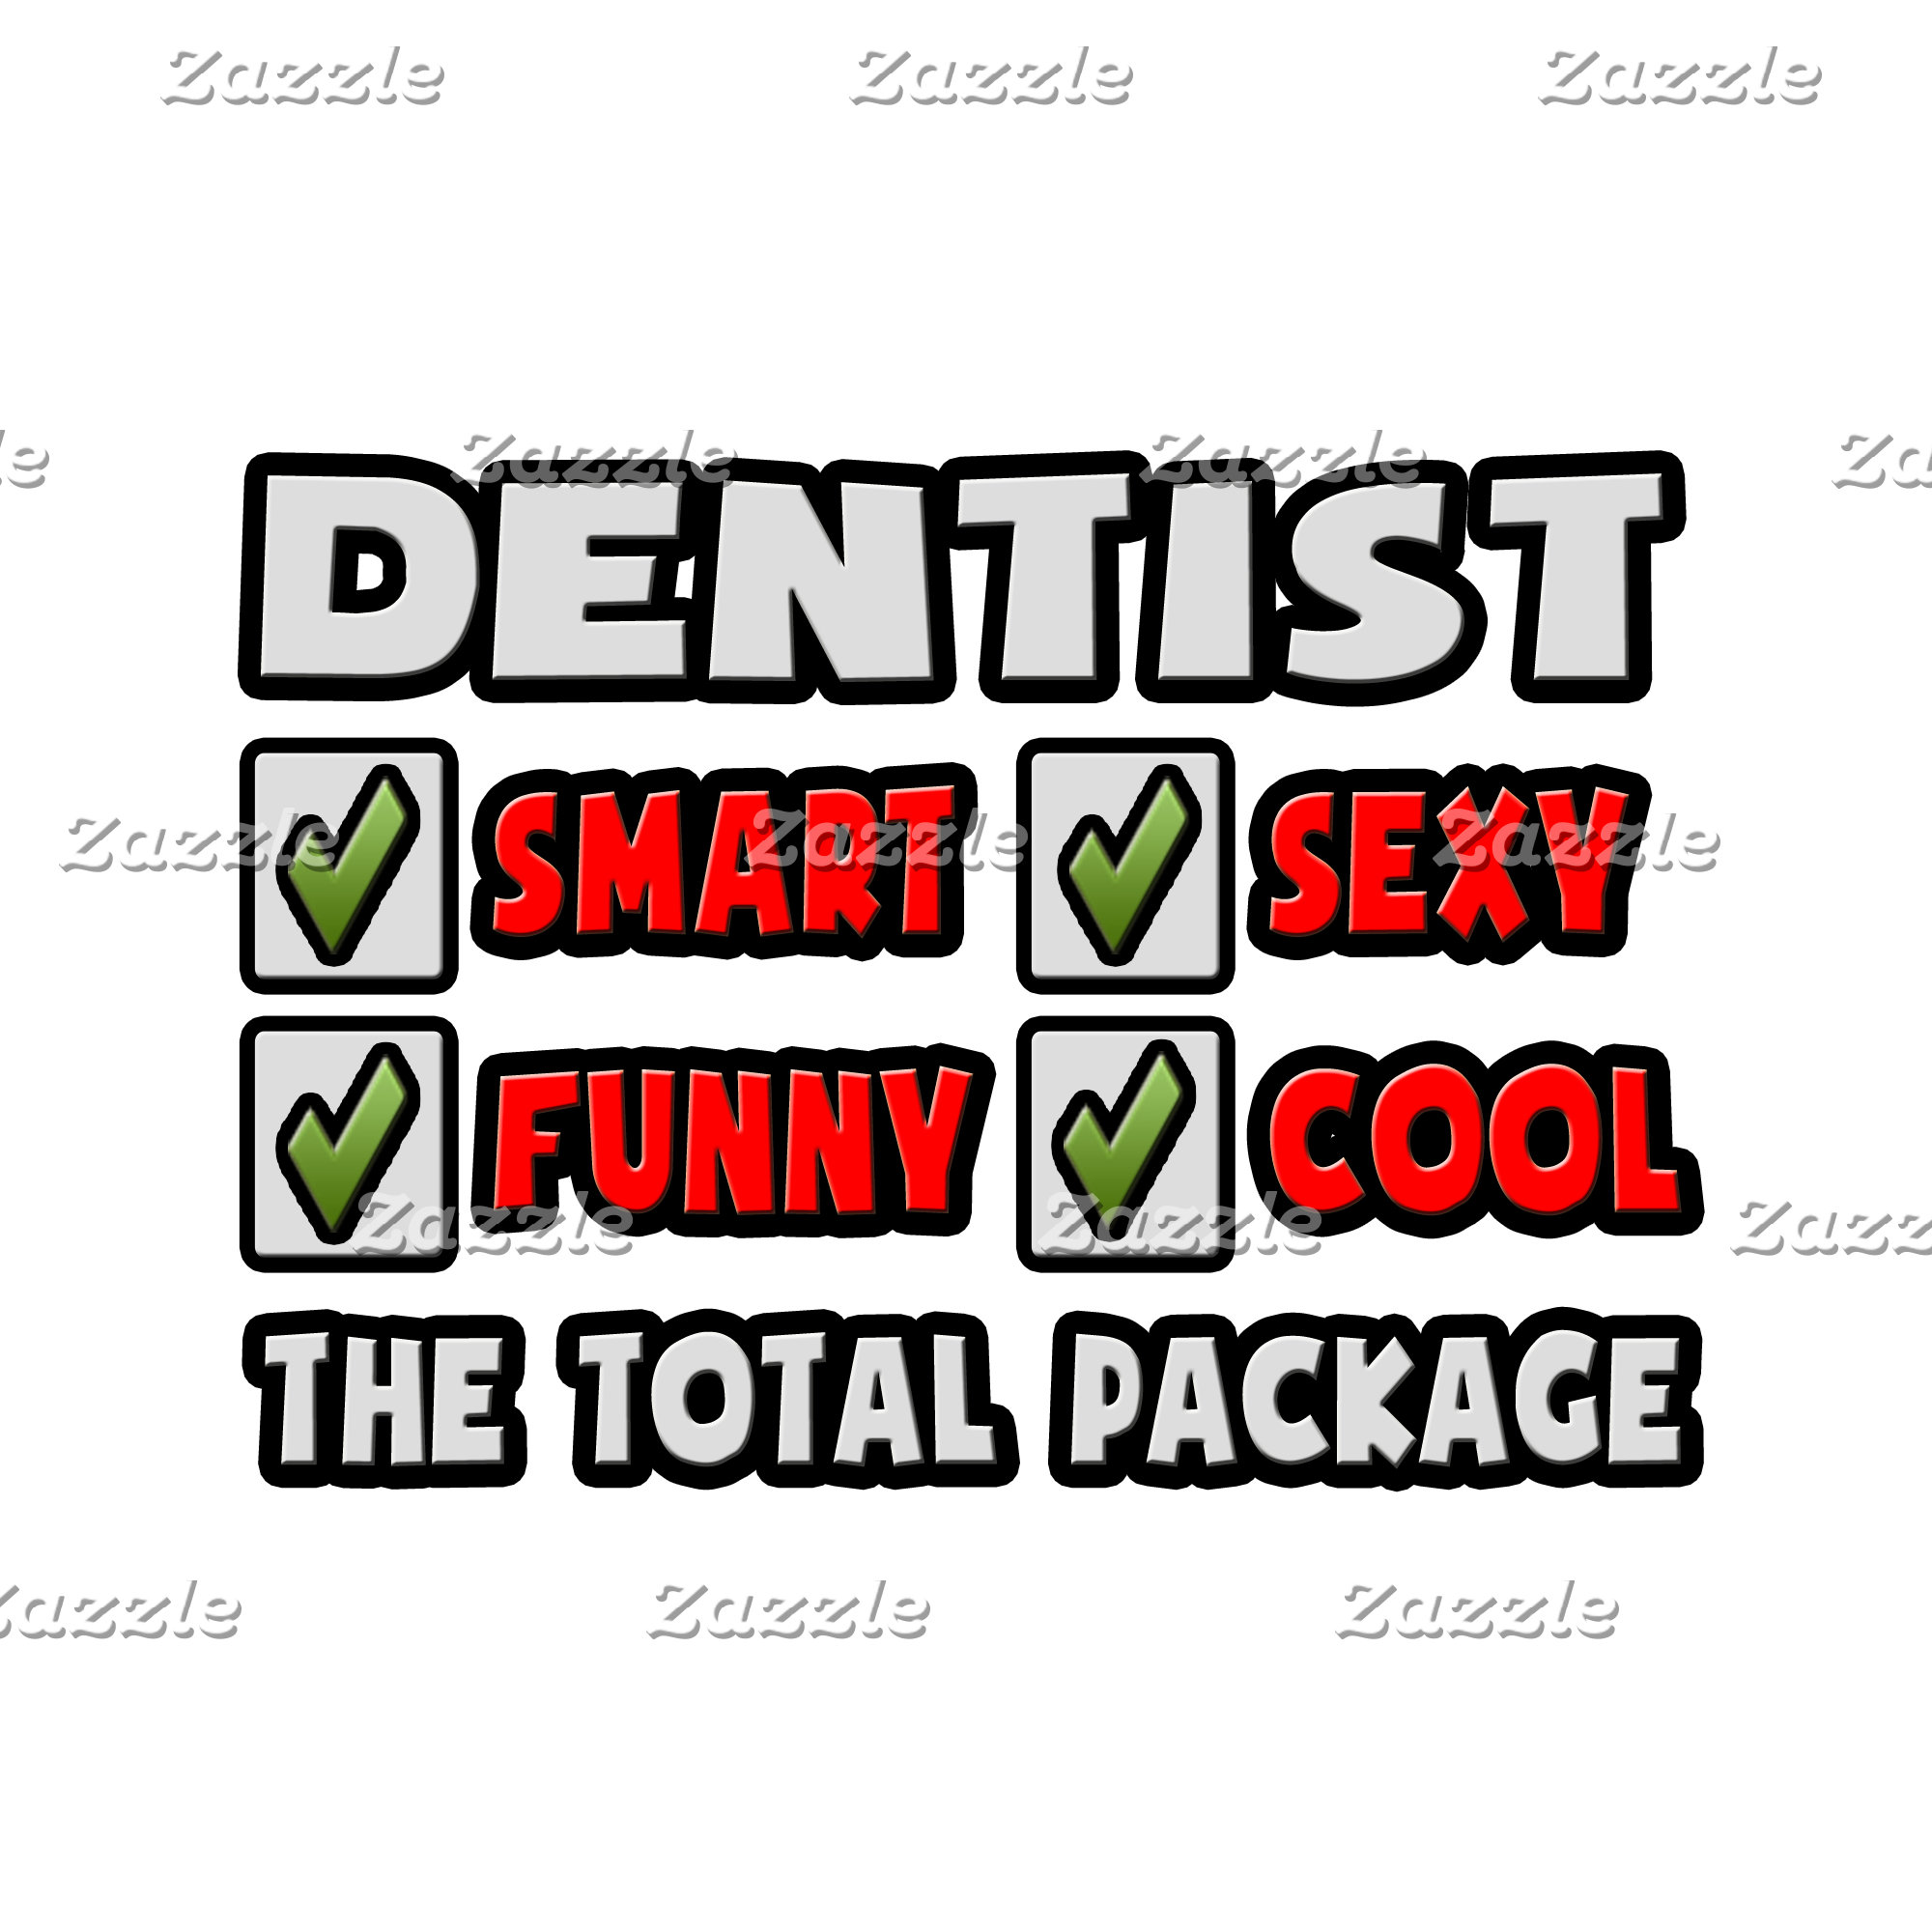 Dentist ... The Total Package